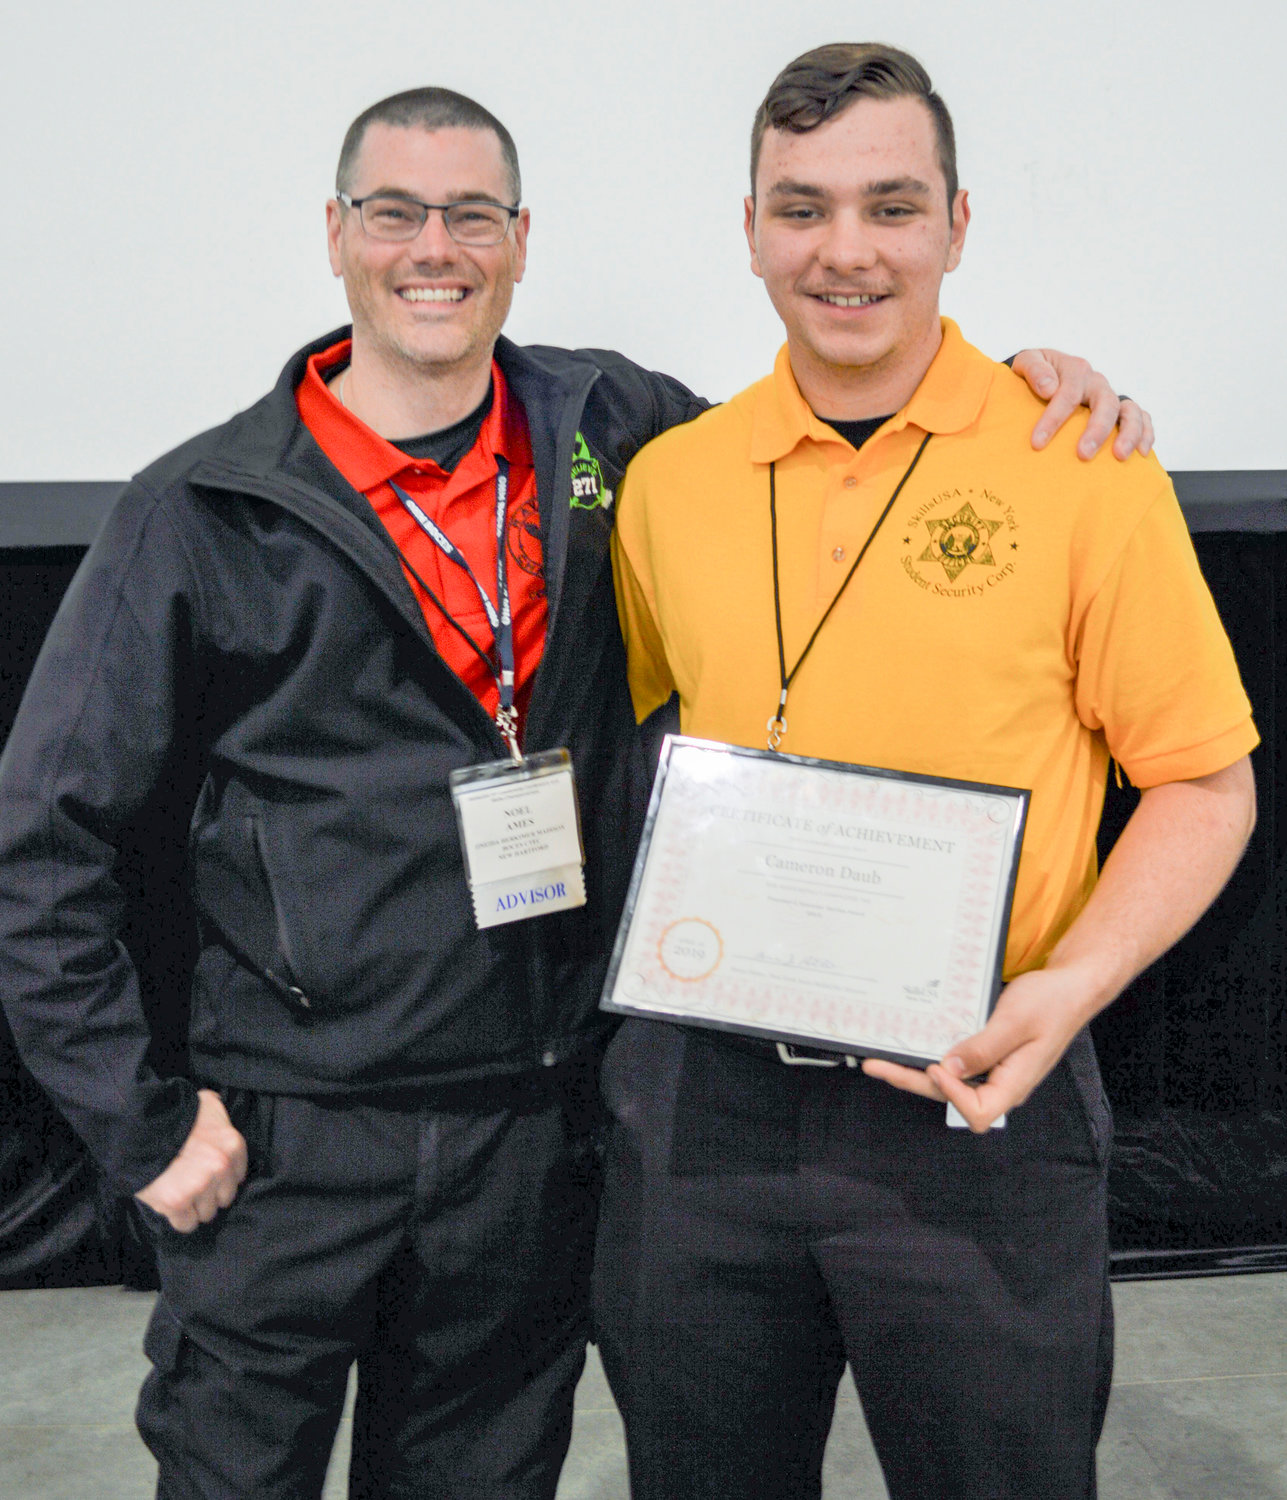 SERVICE AWARD — Pictured from left are Oneida-Herkimer-Madison BOCES Criminal Justice instructor Noel Ames and Cameron Daub, of New Hartford. Daub was named as the individual recipient of the 2019 Presidents Gold Community Service Award.